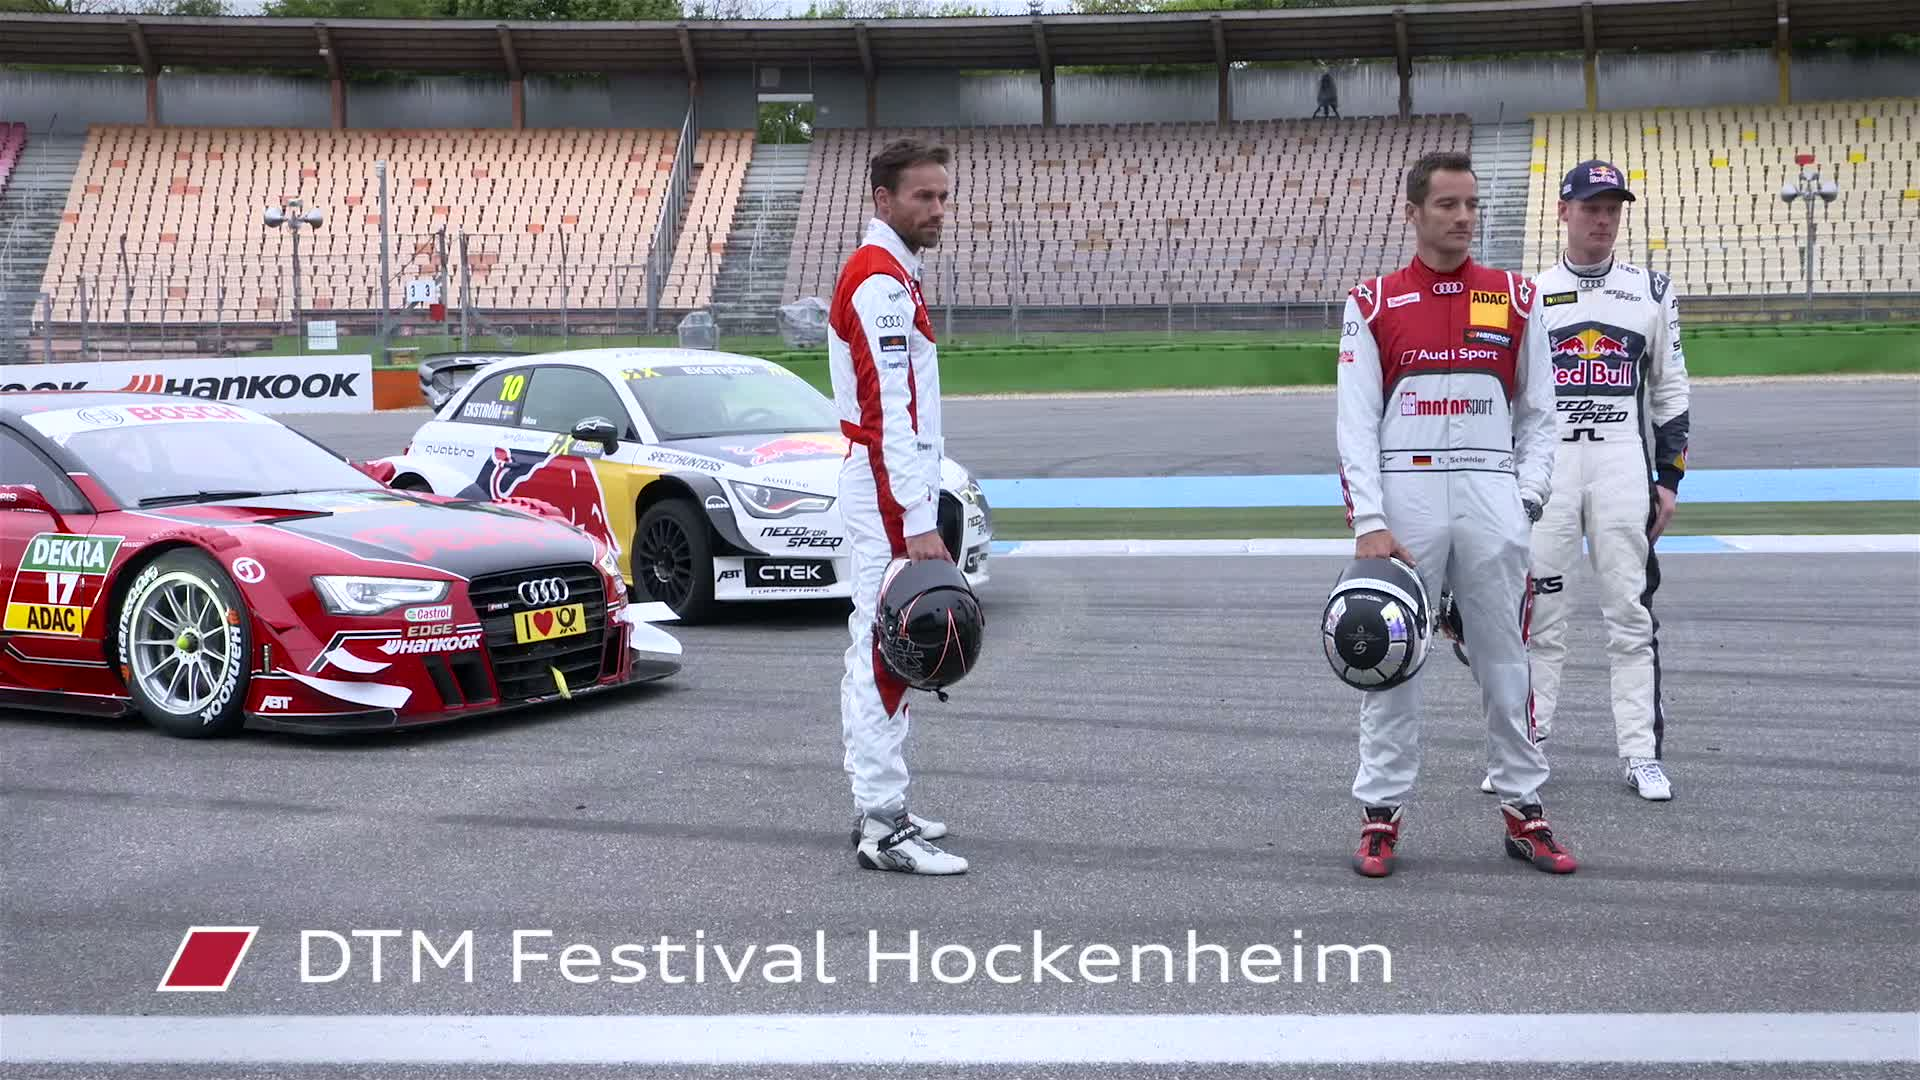 60 Seconds of Audi Sport 16/2015 - DTM Festival in Hockenheim